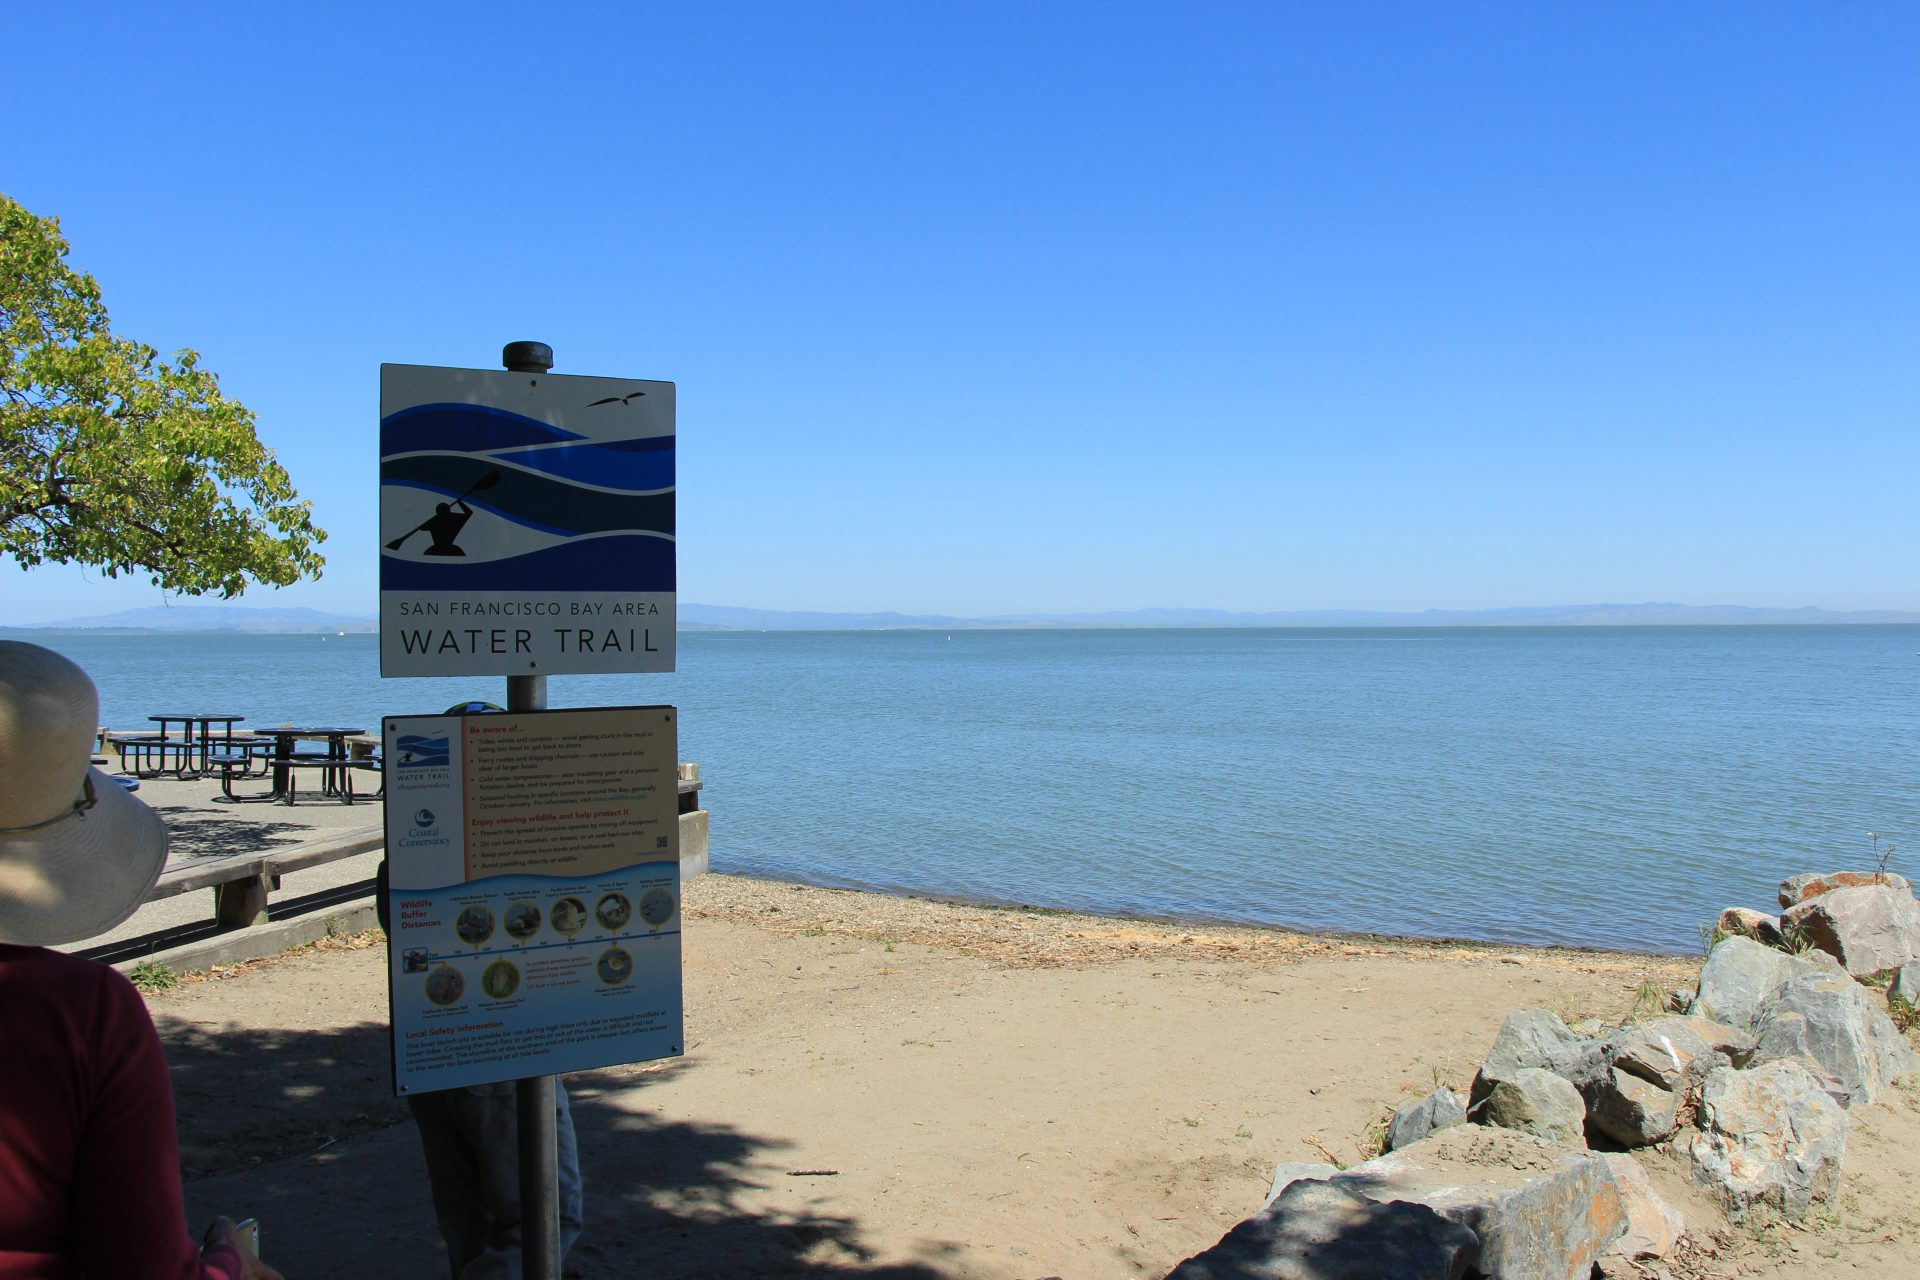 Sign: San FRancisco Bay Area Water Trail